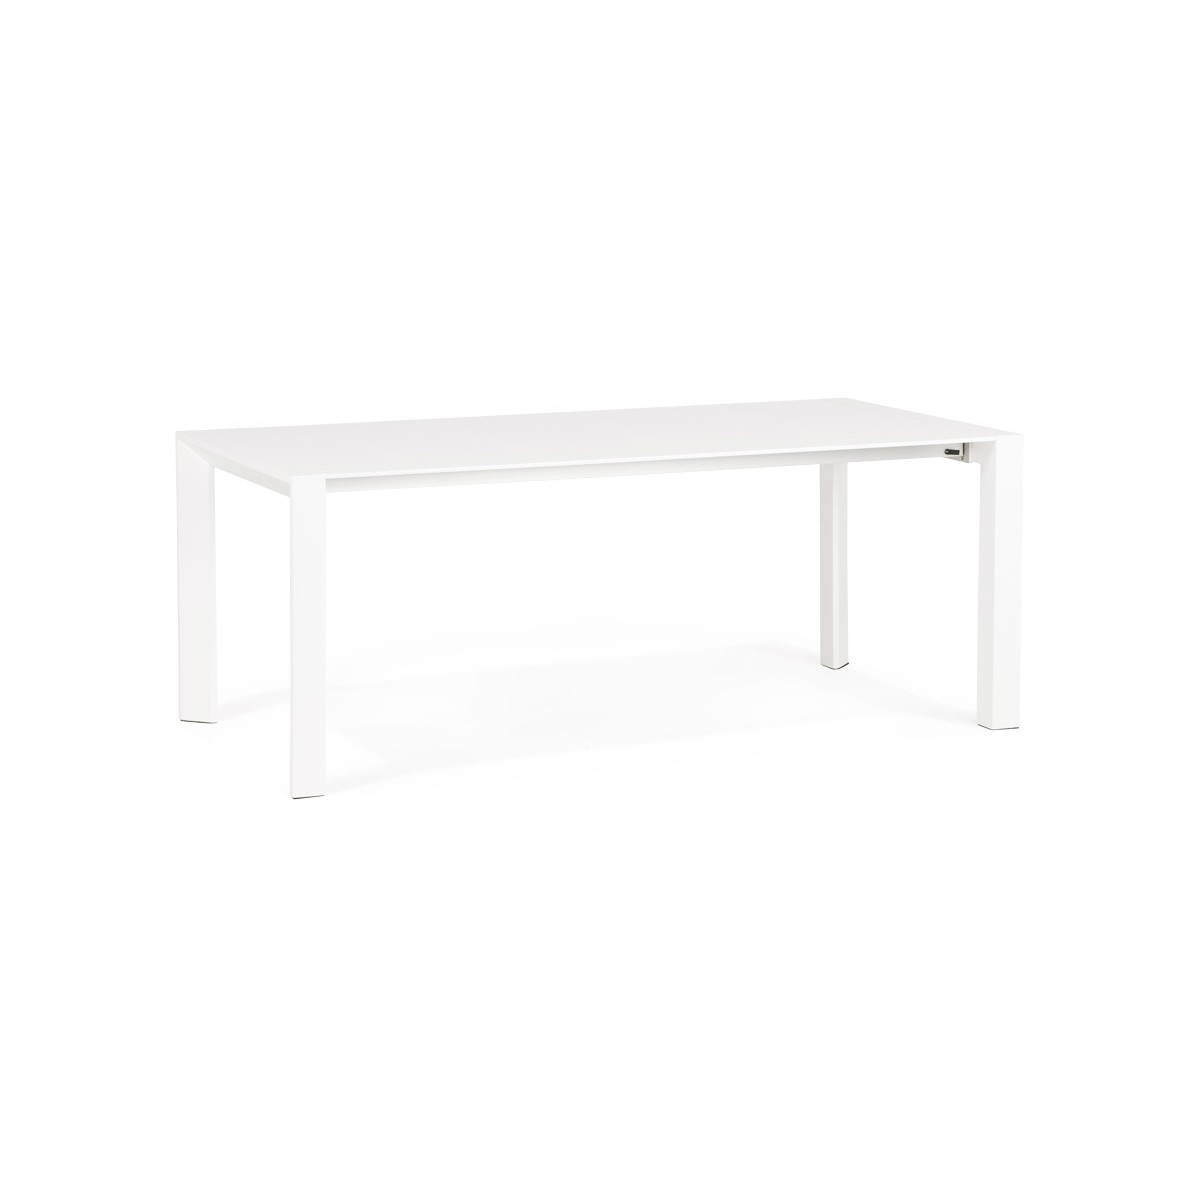 table design avec 2 rallonges macy en bois peint blanc english english. Black Bedroom Furniture Sets. Home Design Ideas